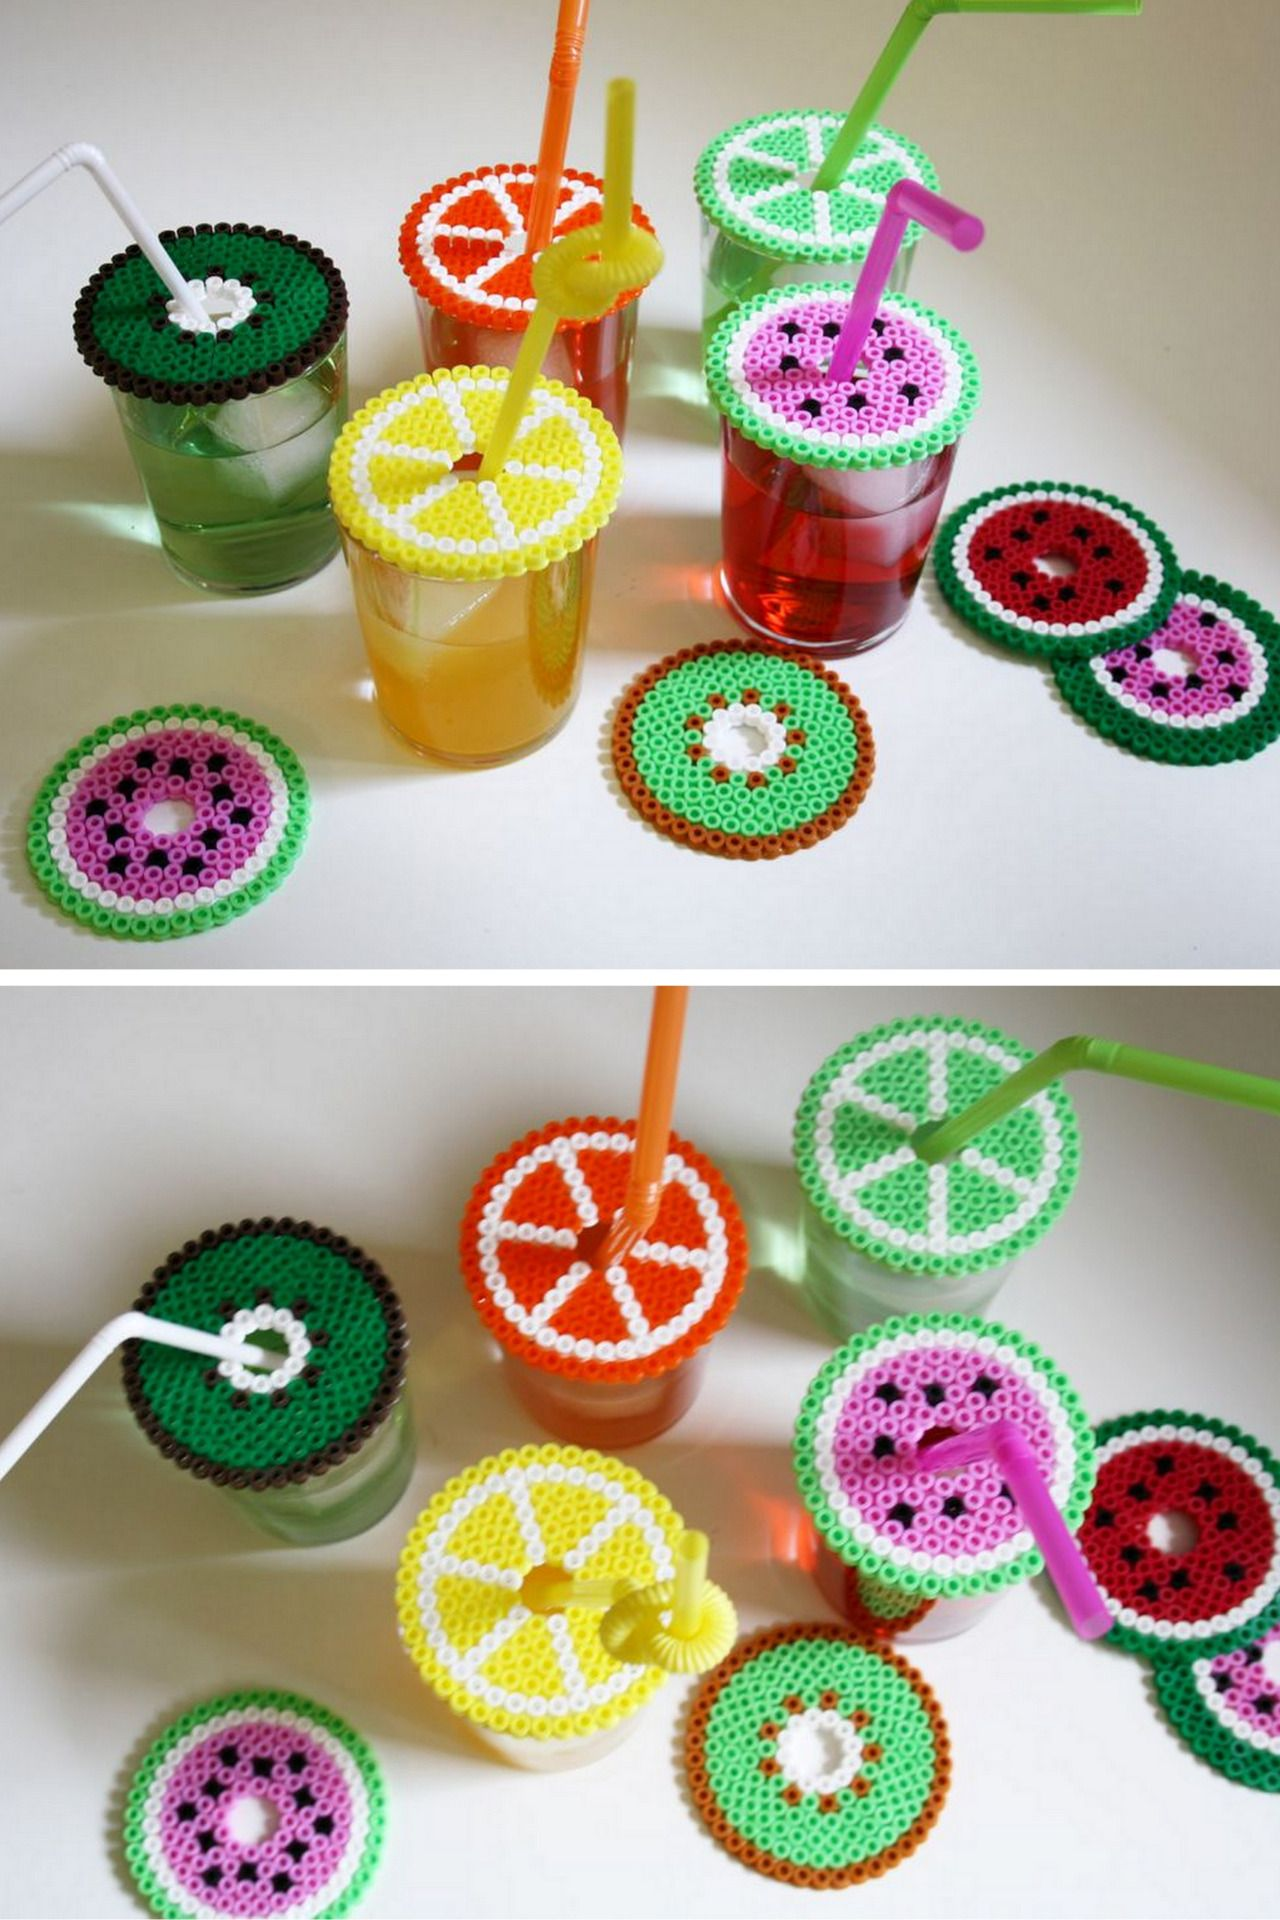 DIY Dual Duty Perler Beads Coasters or Drink Covers Tutorial from Loppi.These coasters/drink covers can be made out of Perler or Hama Beads - so they are very cheap and easy to make.For lots more Perler Bead DIYs go here.The video is not in English, but words really aren't necessary!